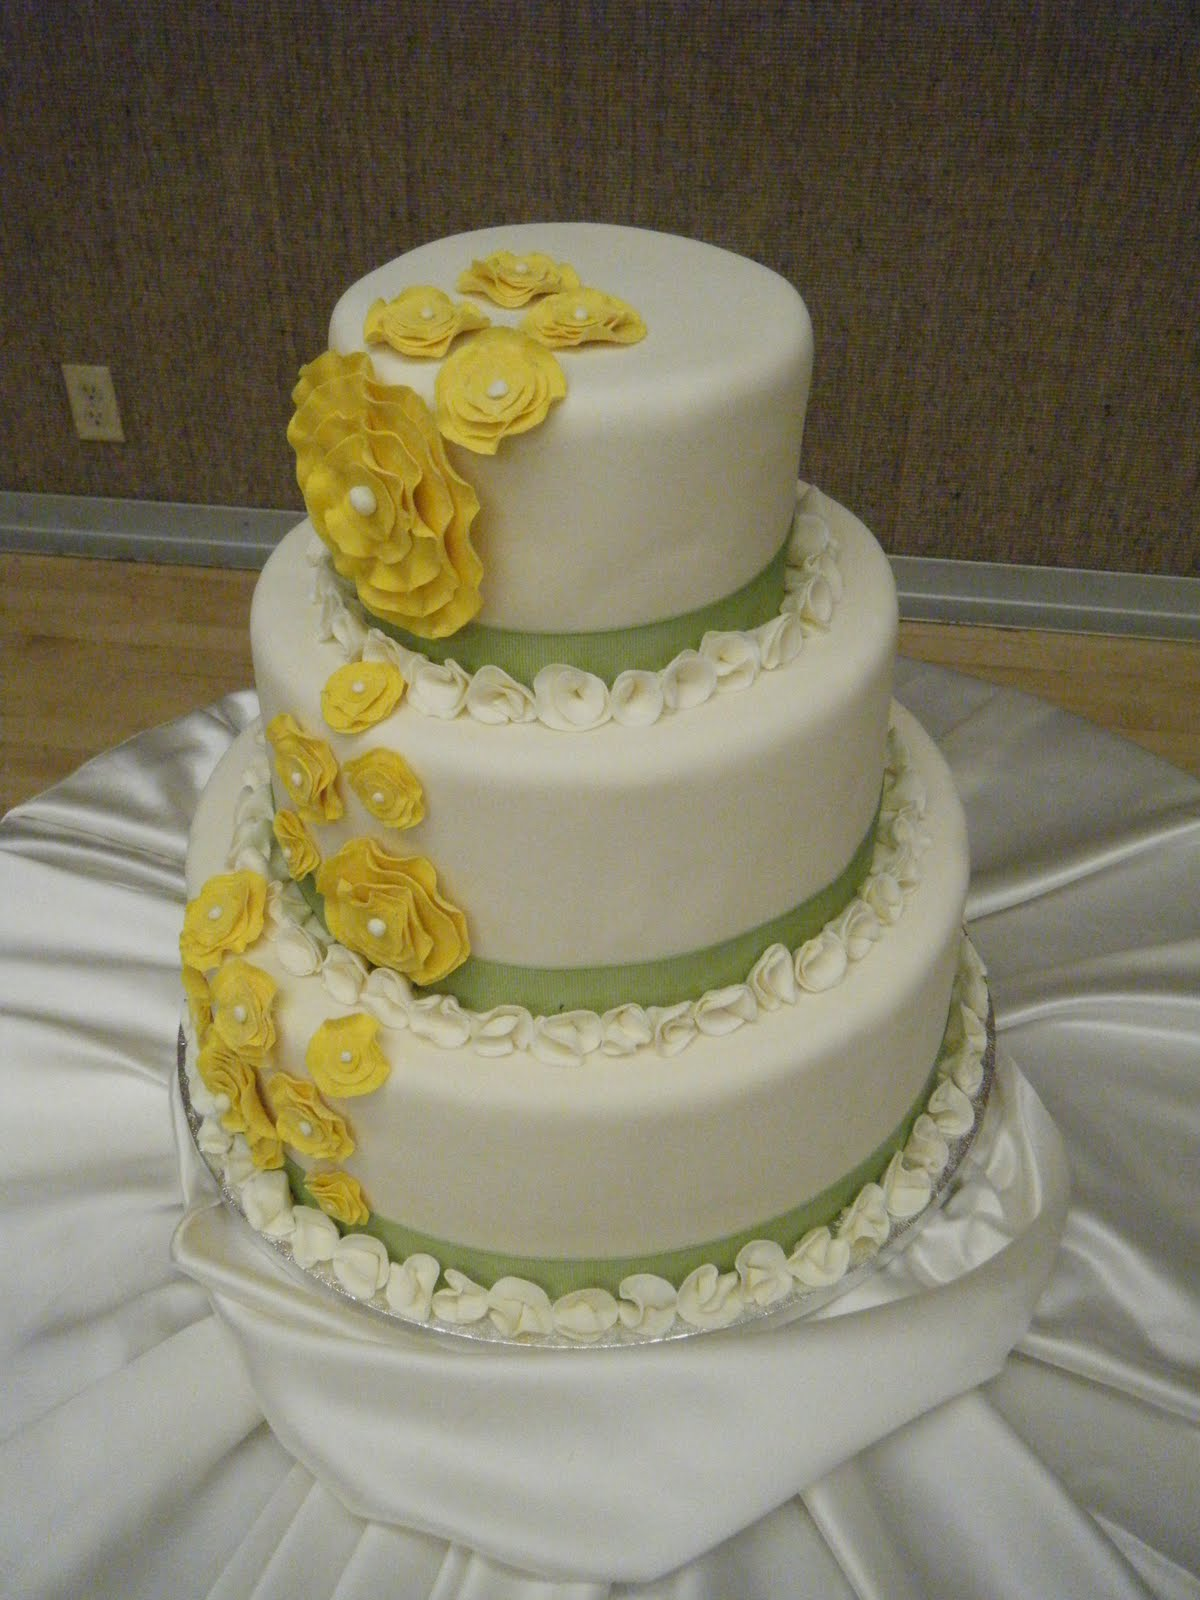 Cool flower wedding cake